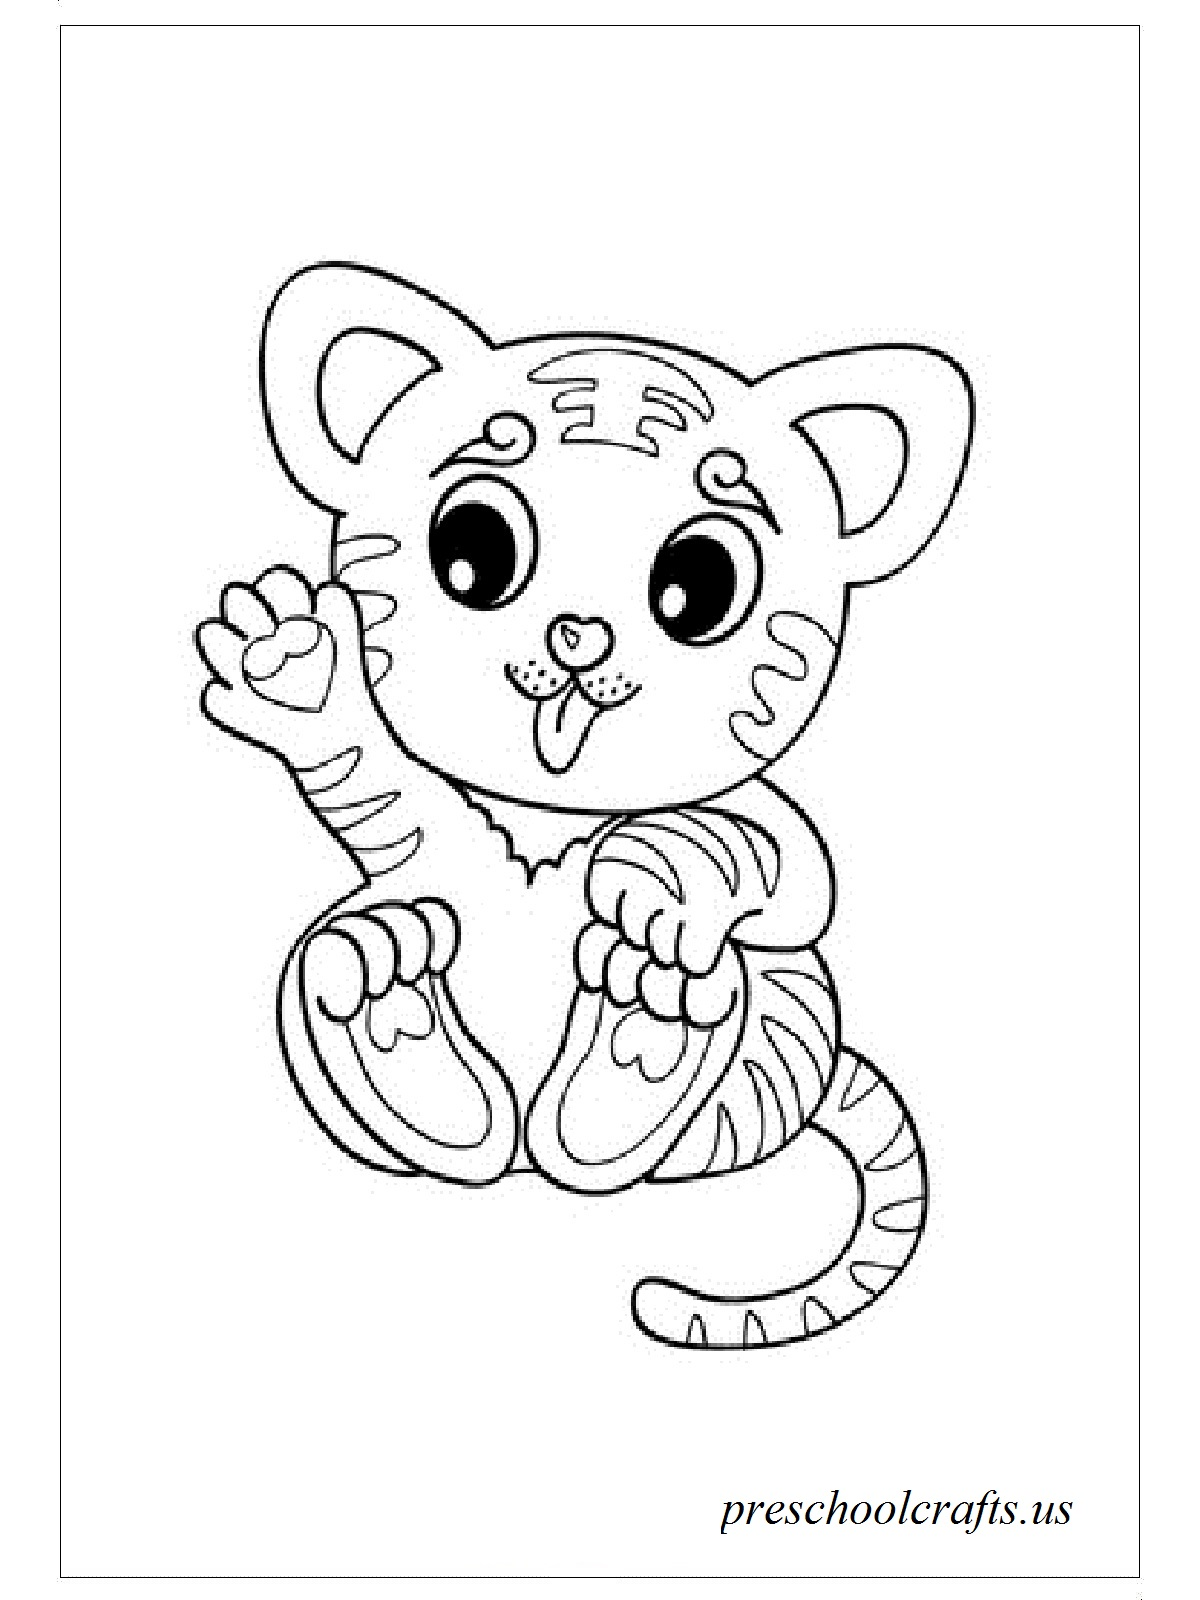 tiger coloring book pages cute tiger coloring pages kids coloring pages coloring tiger pages book